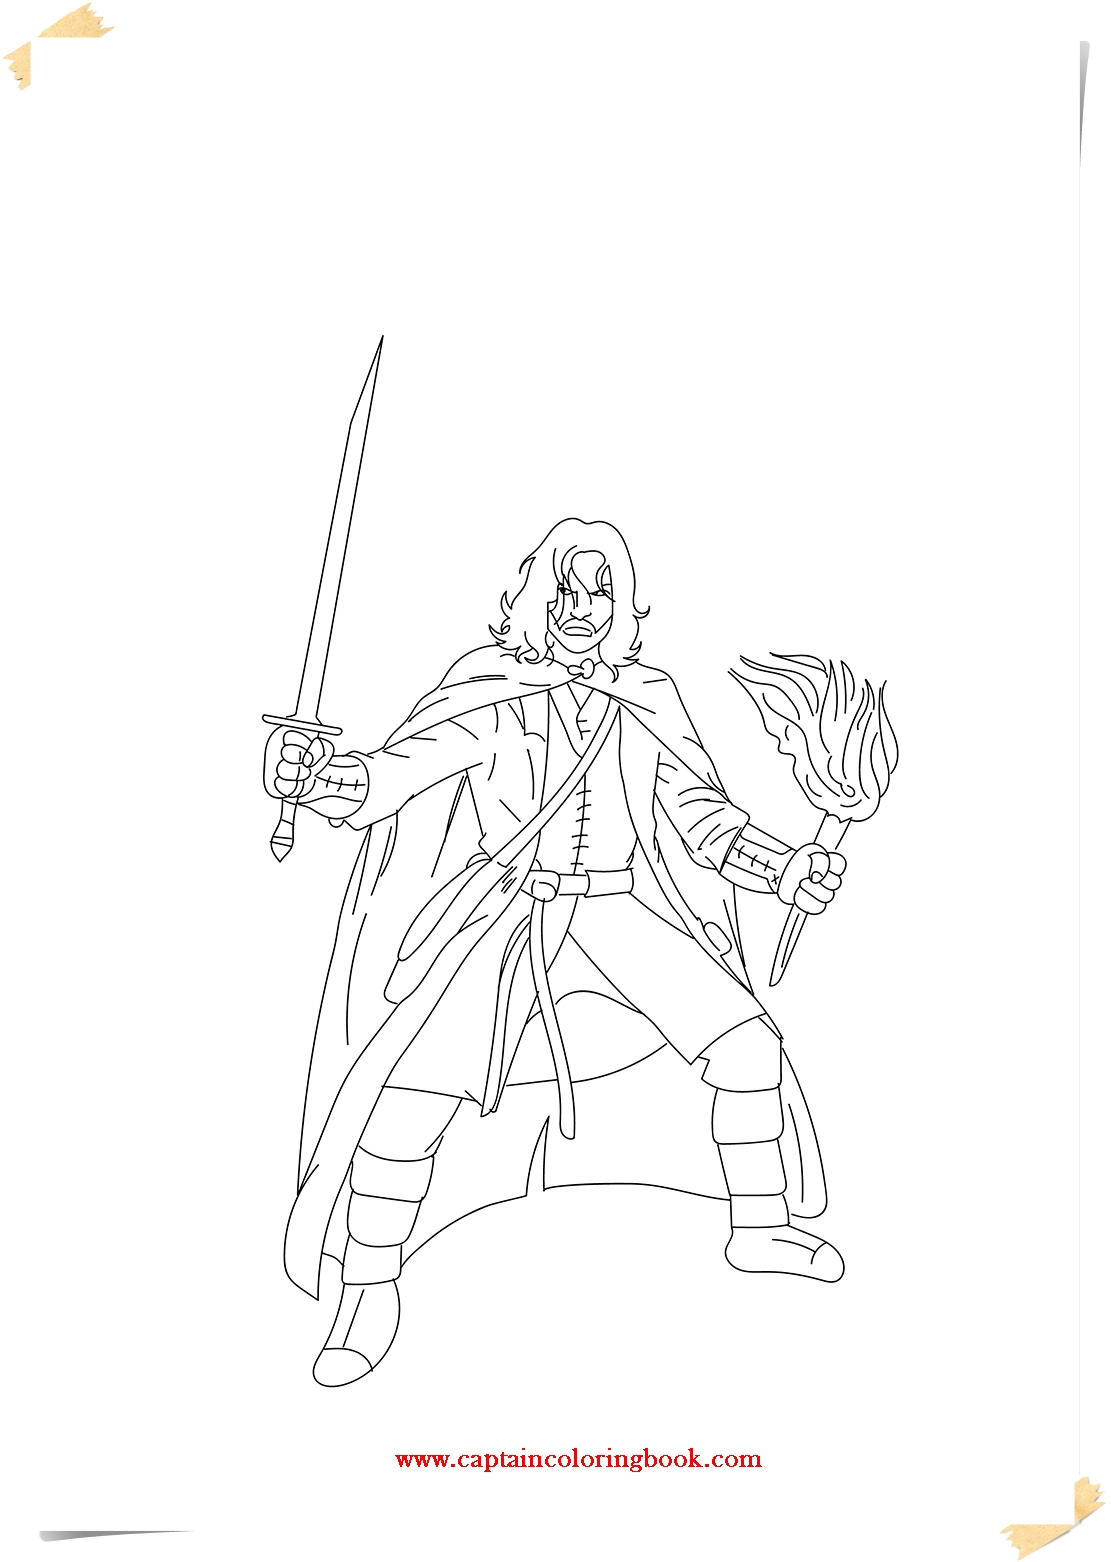 lord of the rings coloring pages ebook - Lotr Coloring Pages